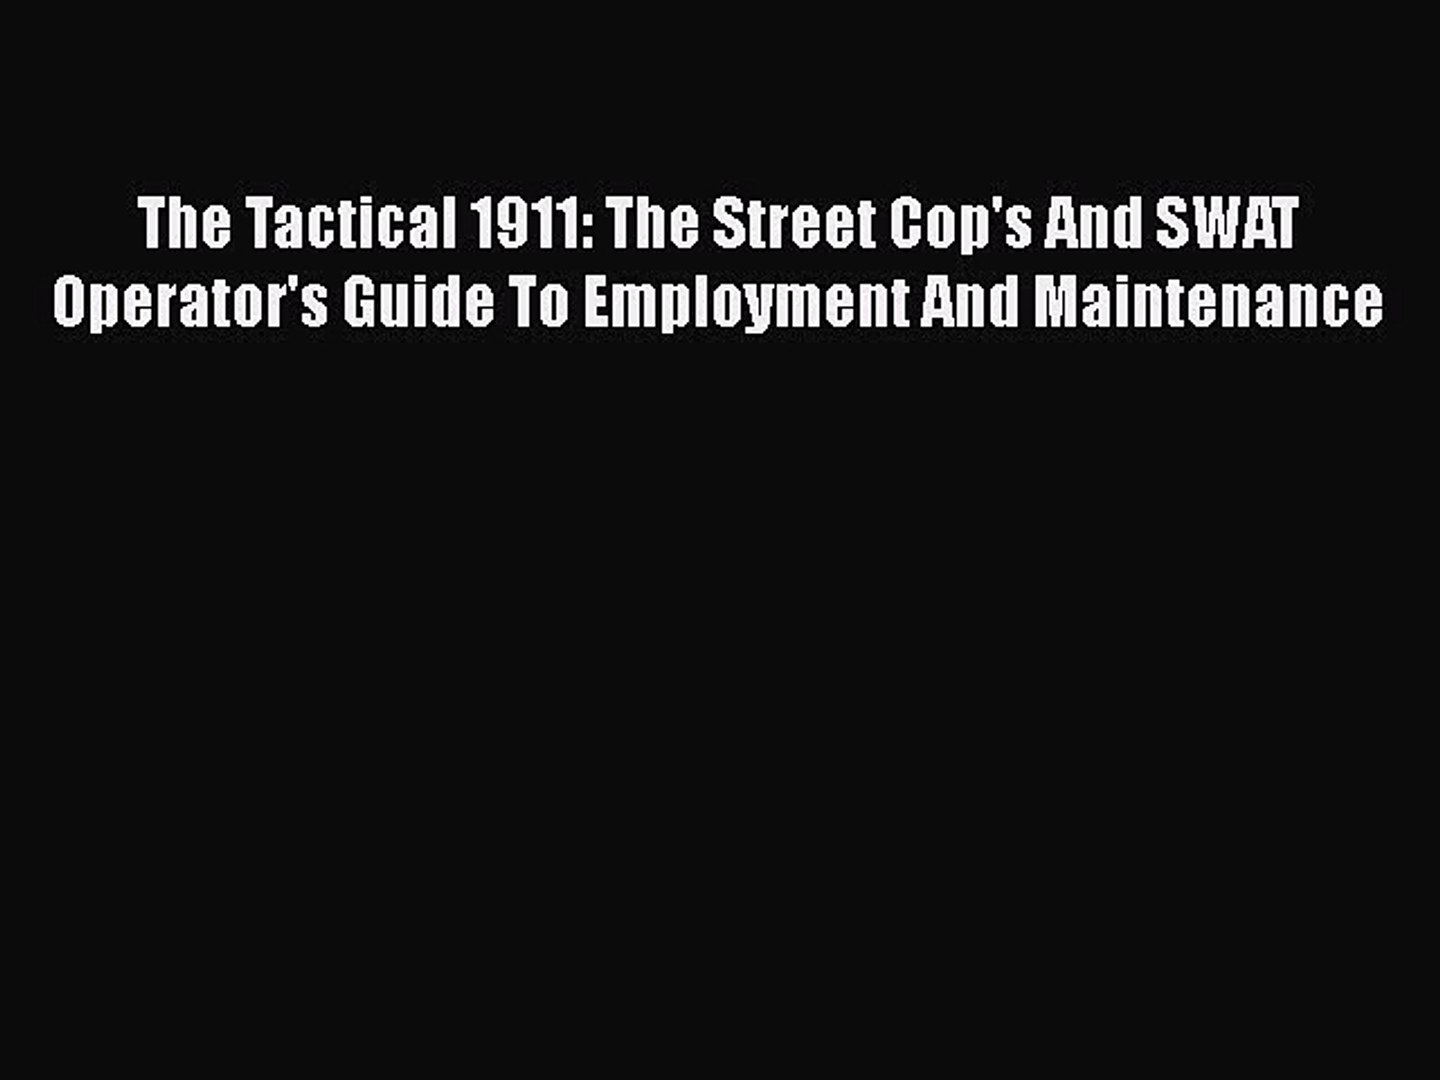 [Read book] The Tactical 1911: The Street Cop's And SWAT Operator's Guide To Employment And